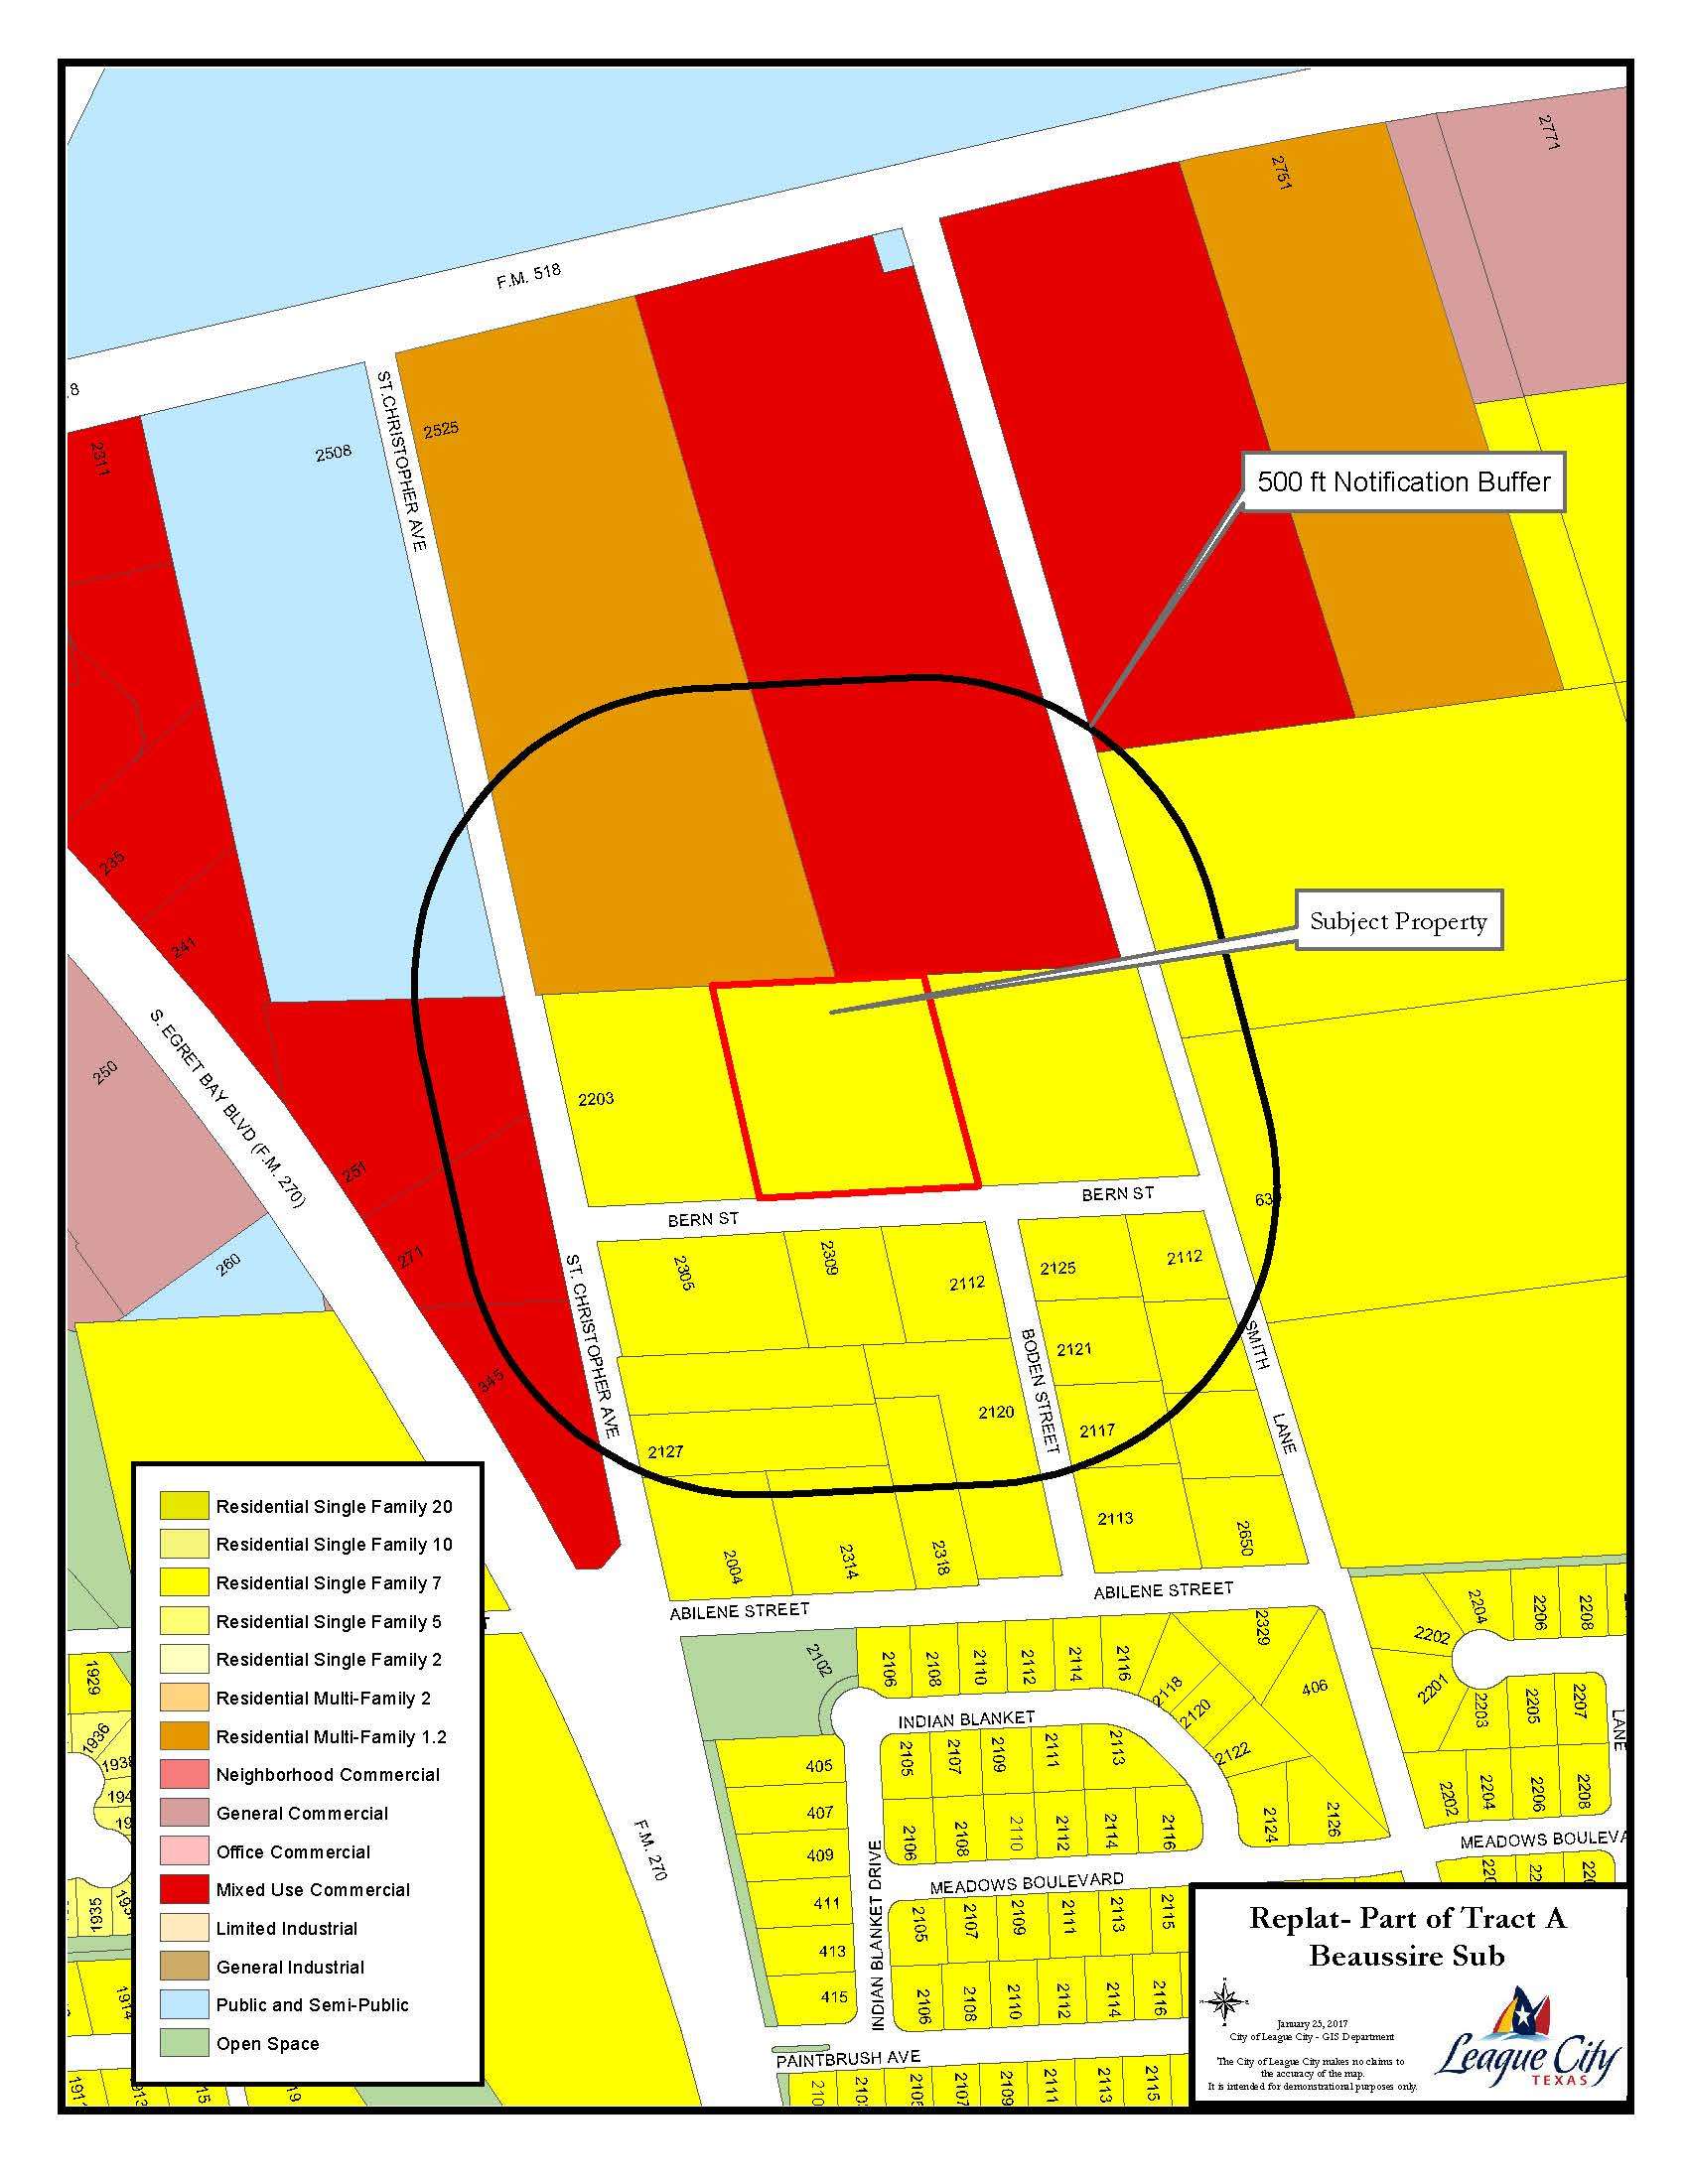 Beaussire Sub Replat Zoning map